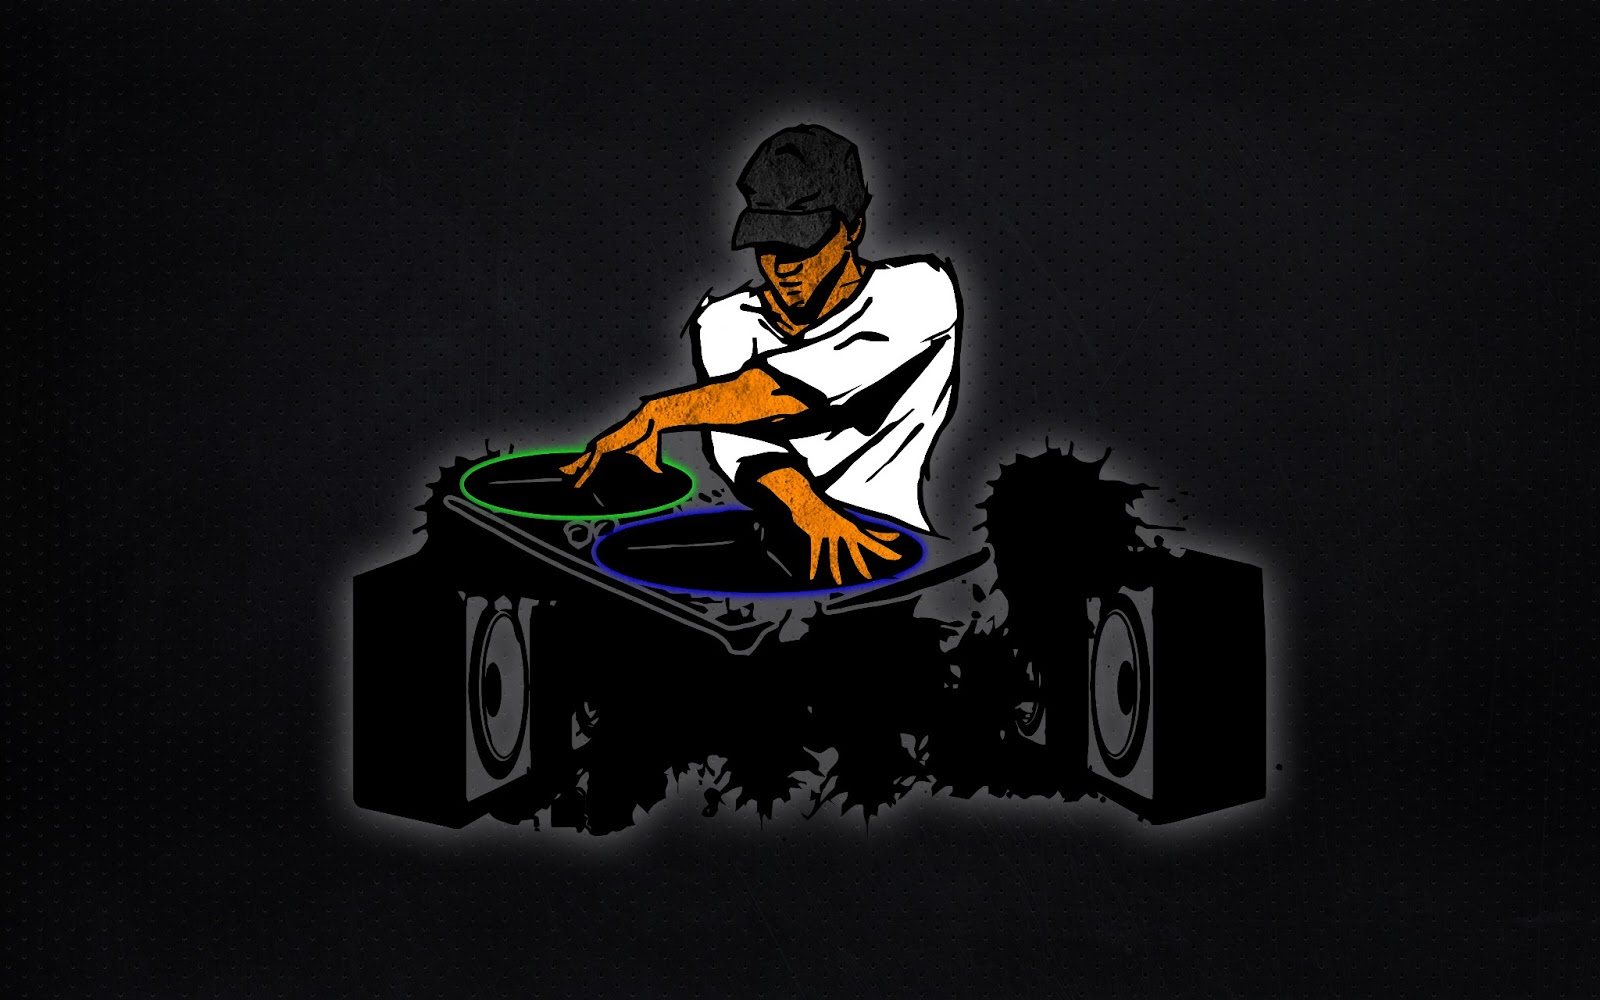 Dj Cartoon Wallpaper